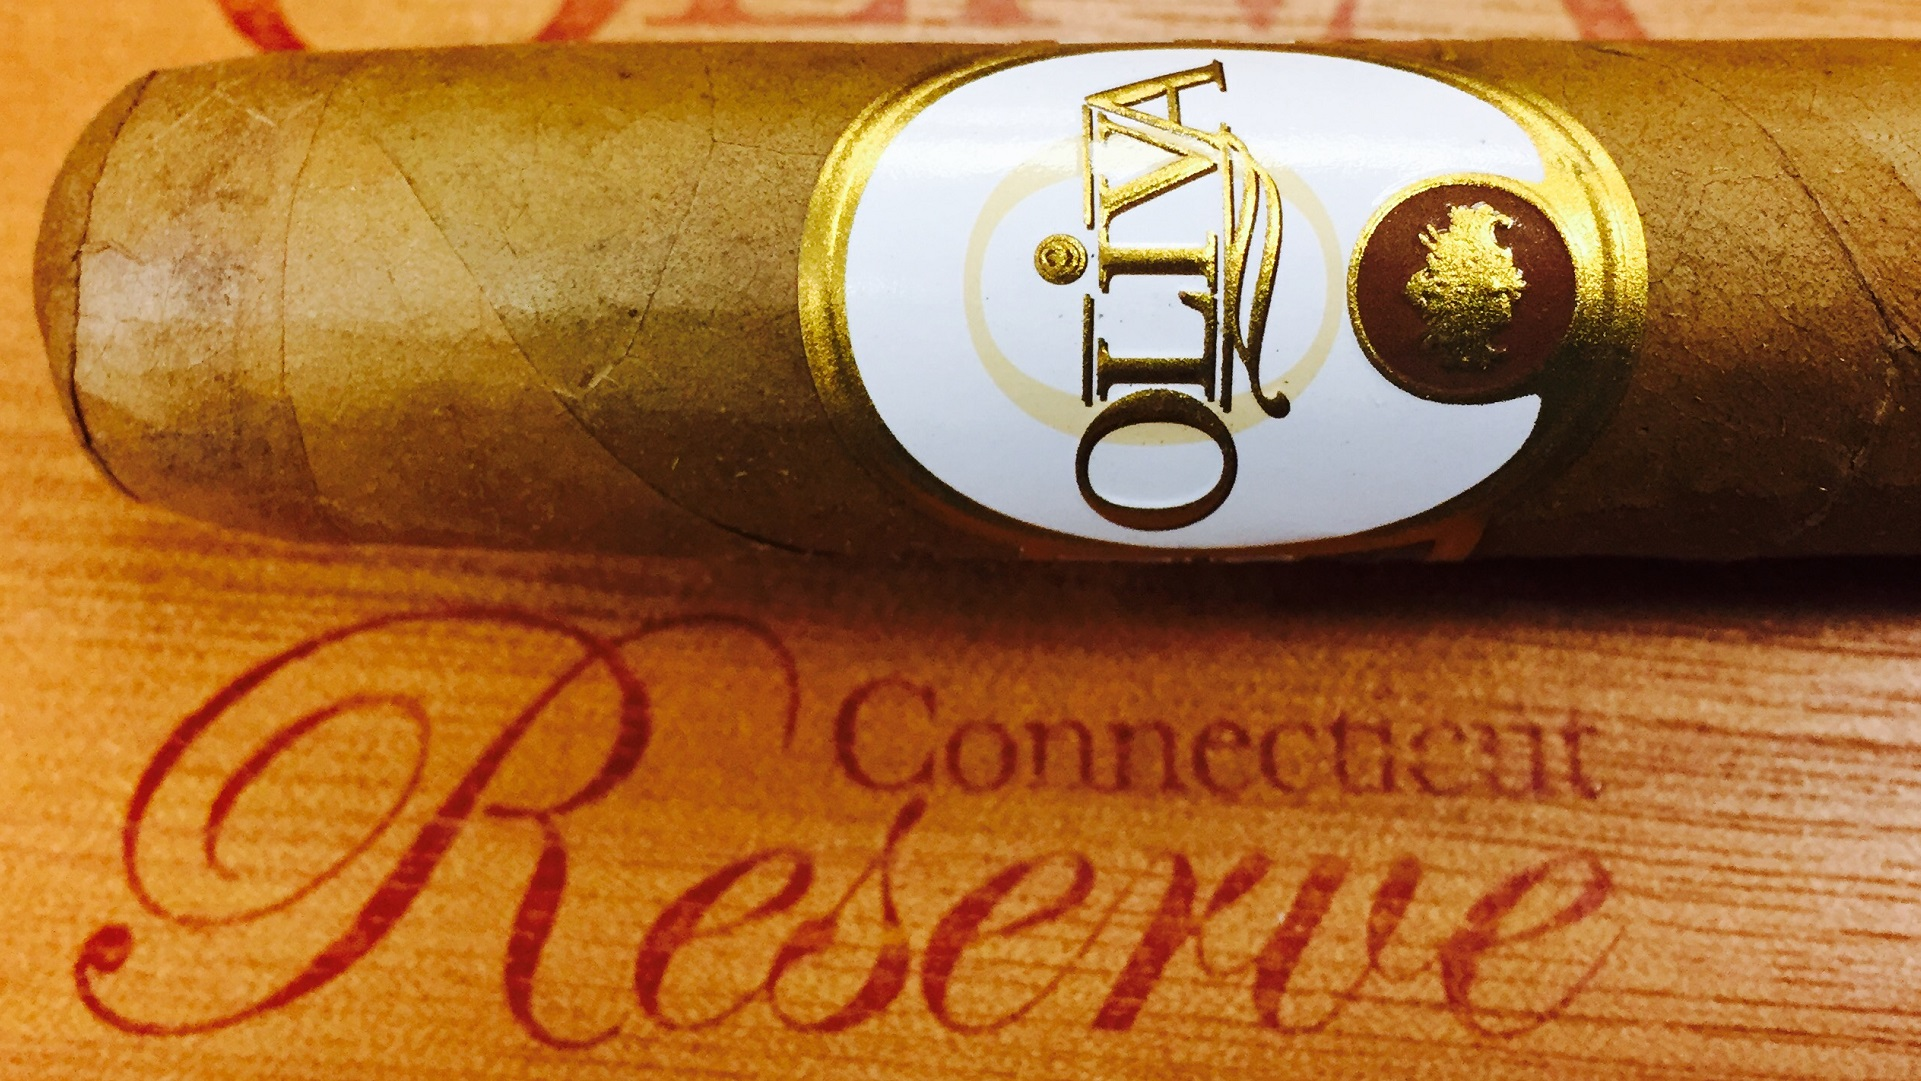 Oliva Connecticut Reserve Lonsdale - Box of 20